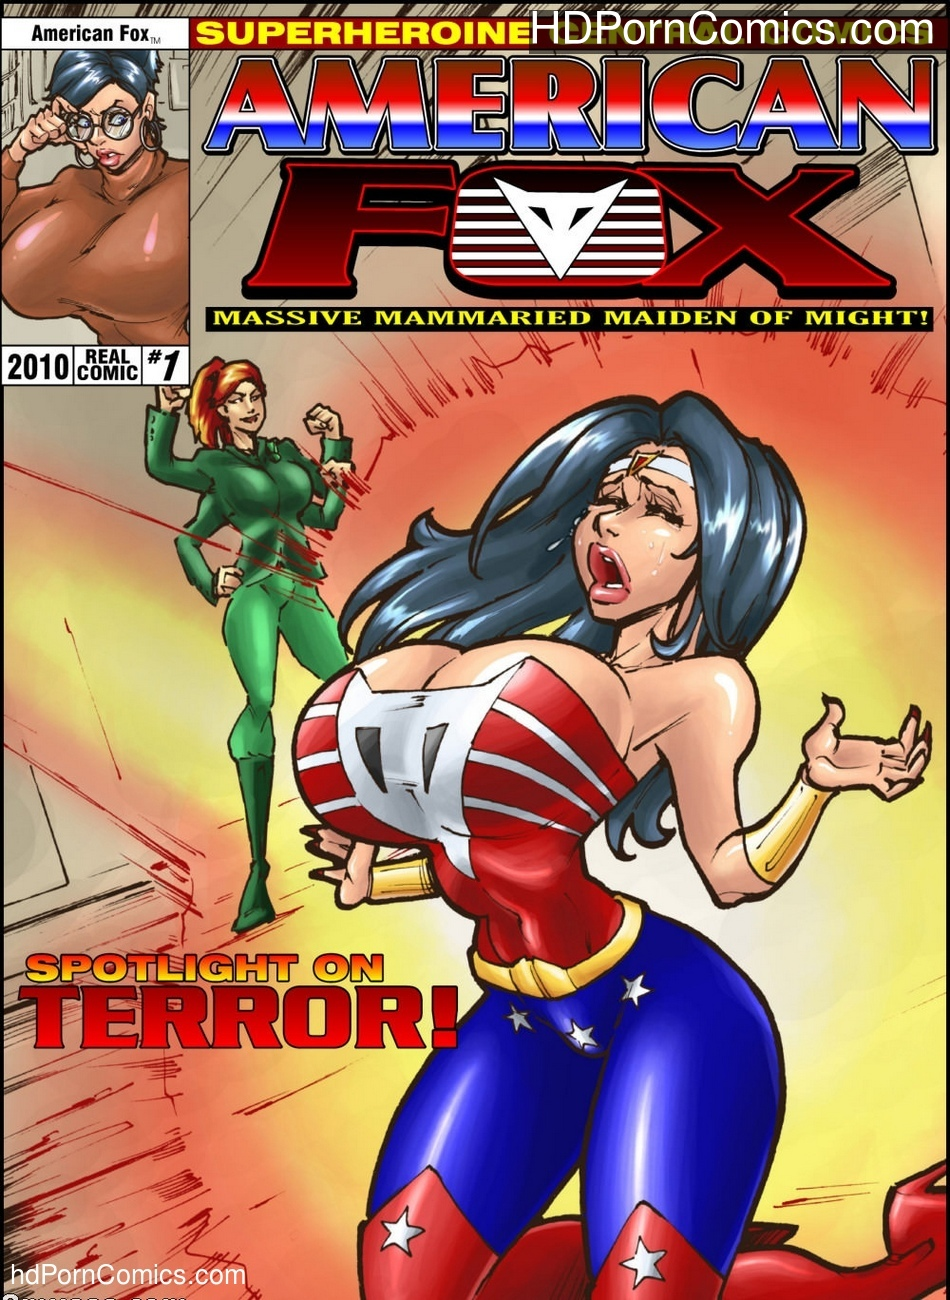 American Fox 1 - Spotlight On Terror 1 free porn comics